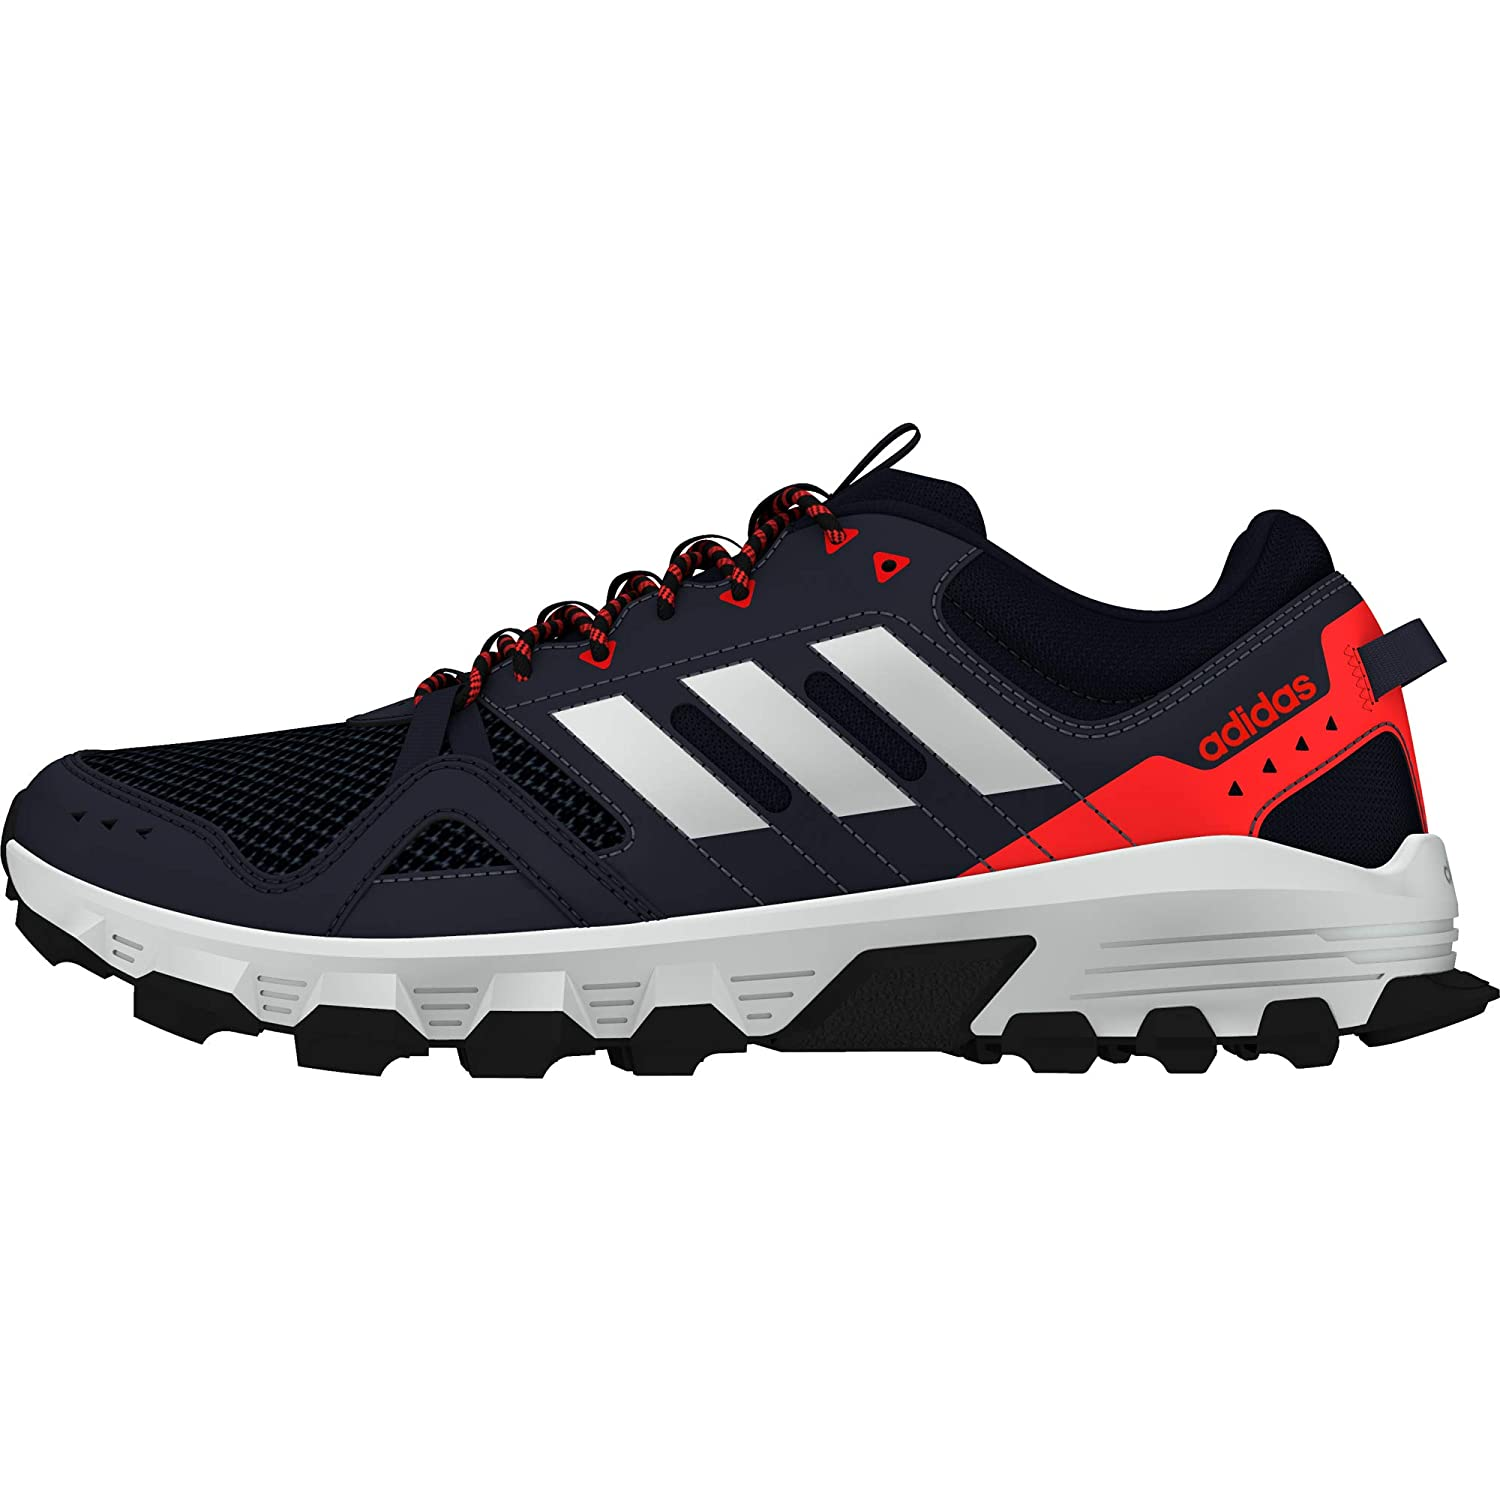 separation shoes c48f0 2e64b adidas Men Running Shoes Rockadia Trail Cloudfoam Training Traxion New